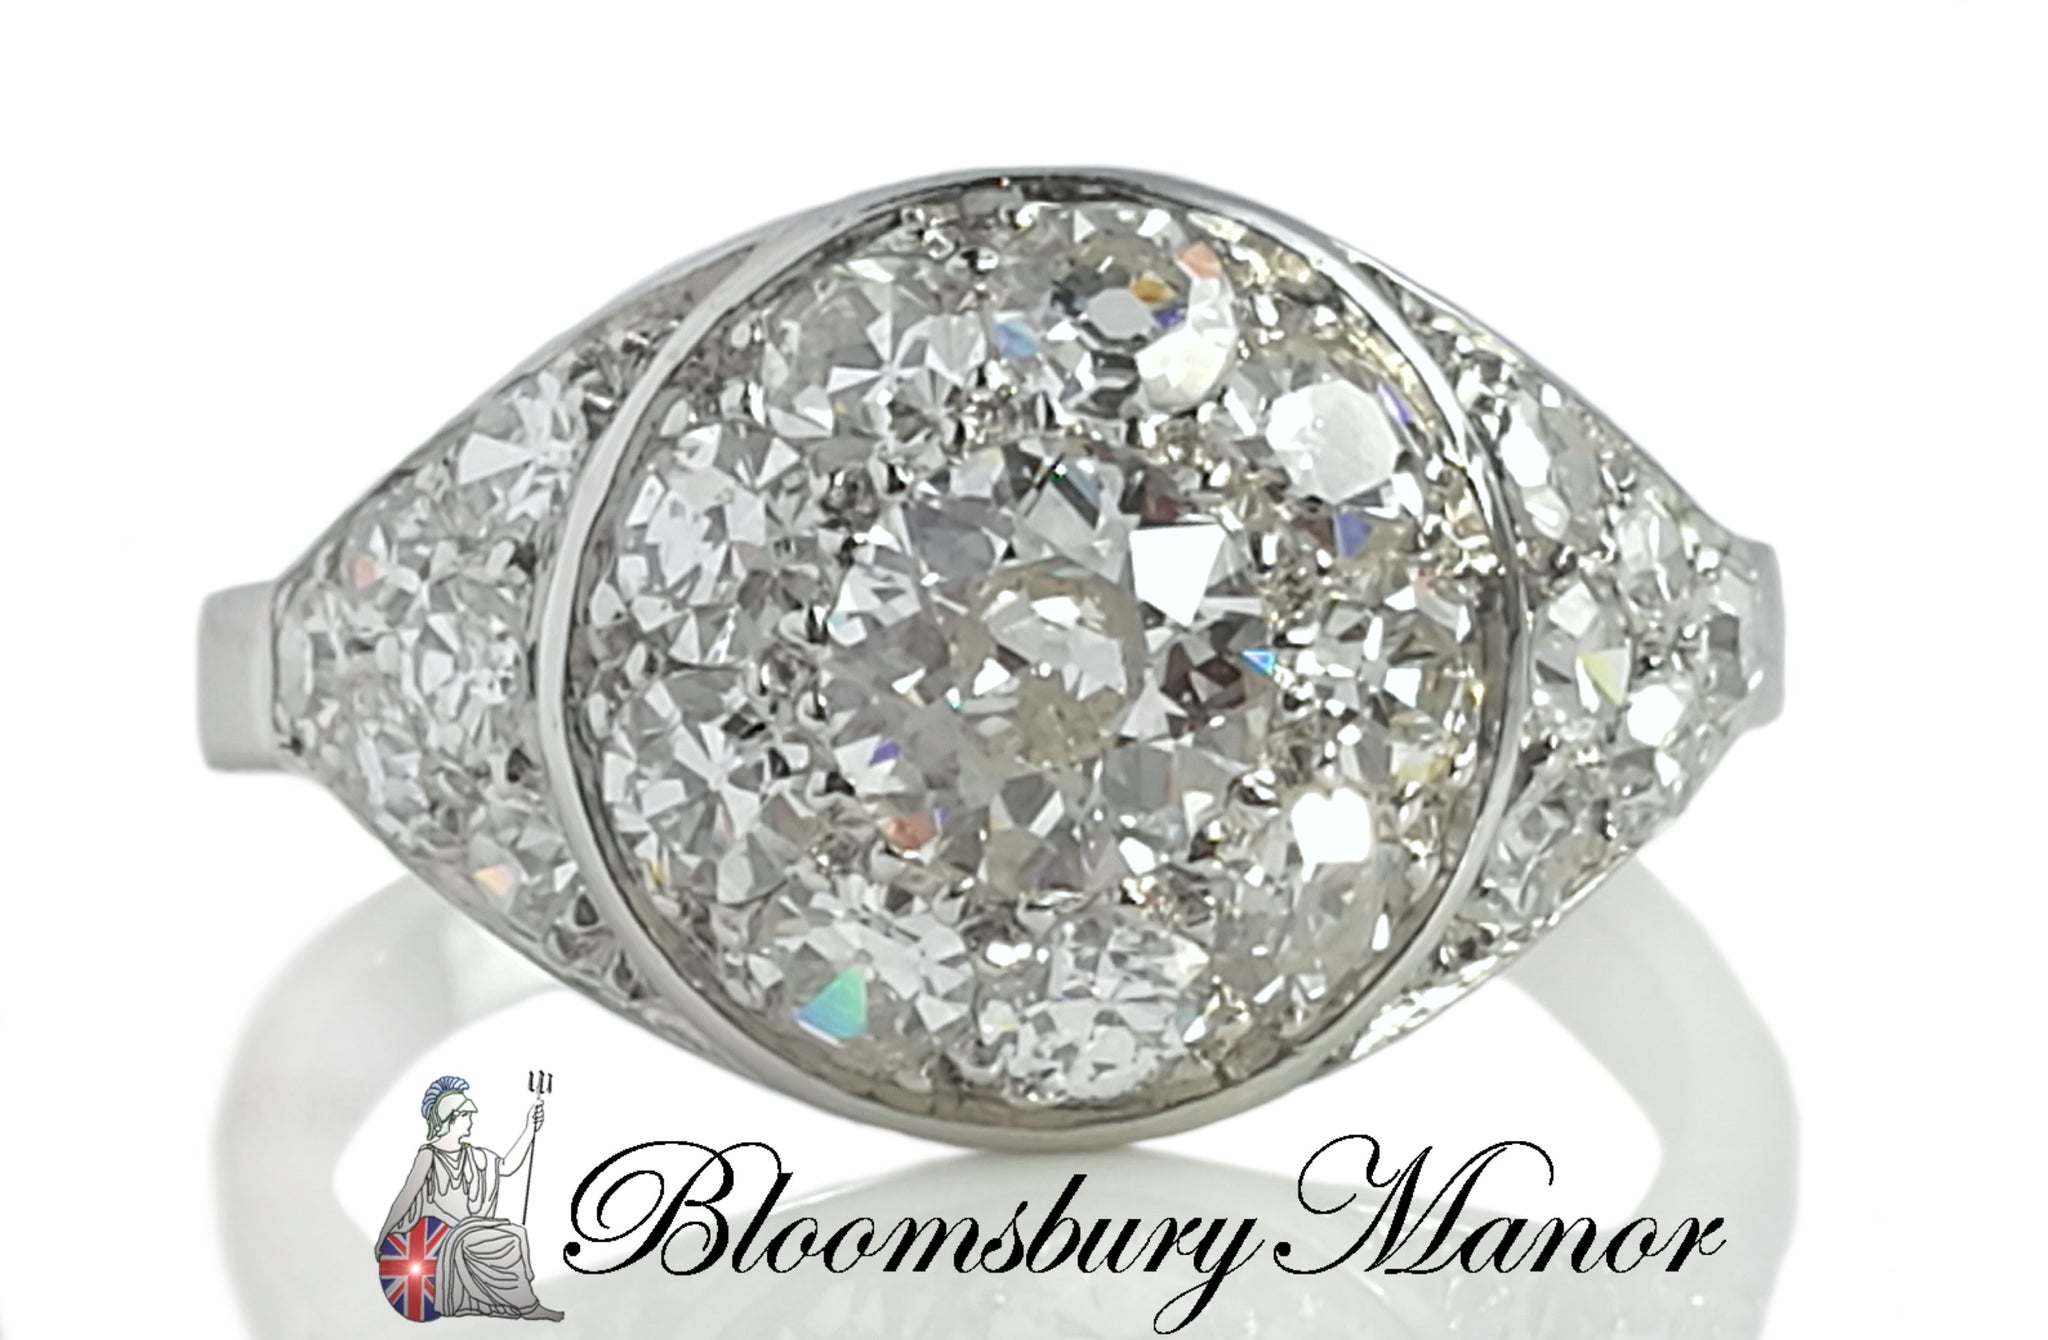 Antique Art Deco 1.77ct Bombe Old Cut Diamond Platinum Engagement Ring SZ L 5.75